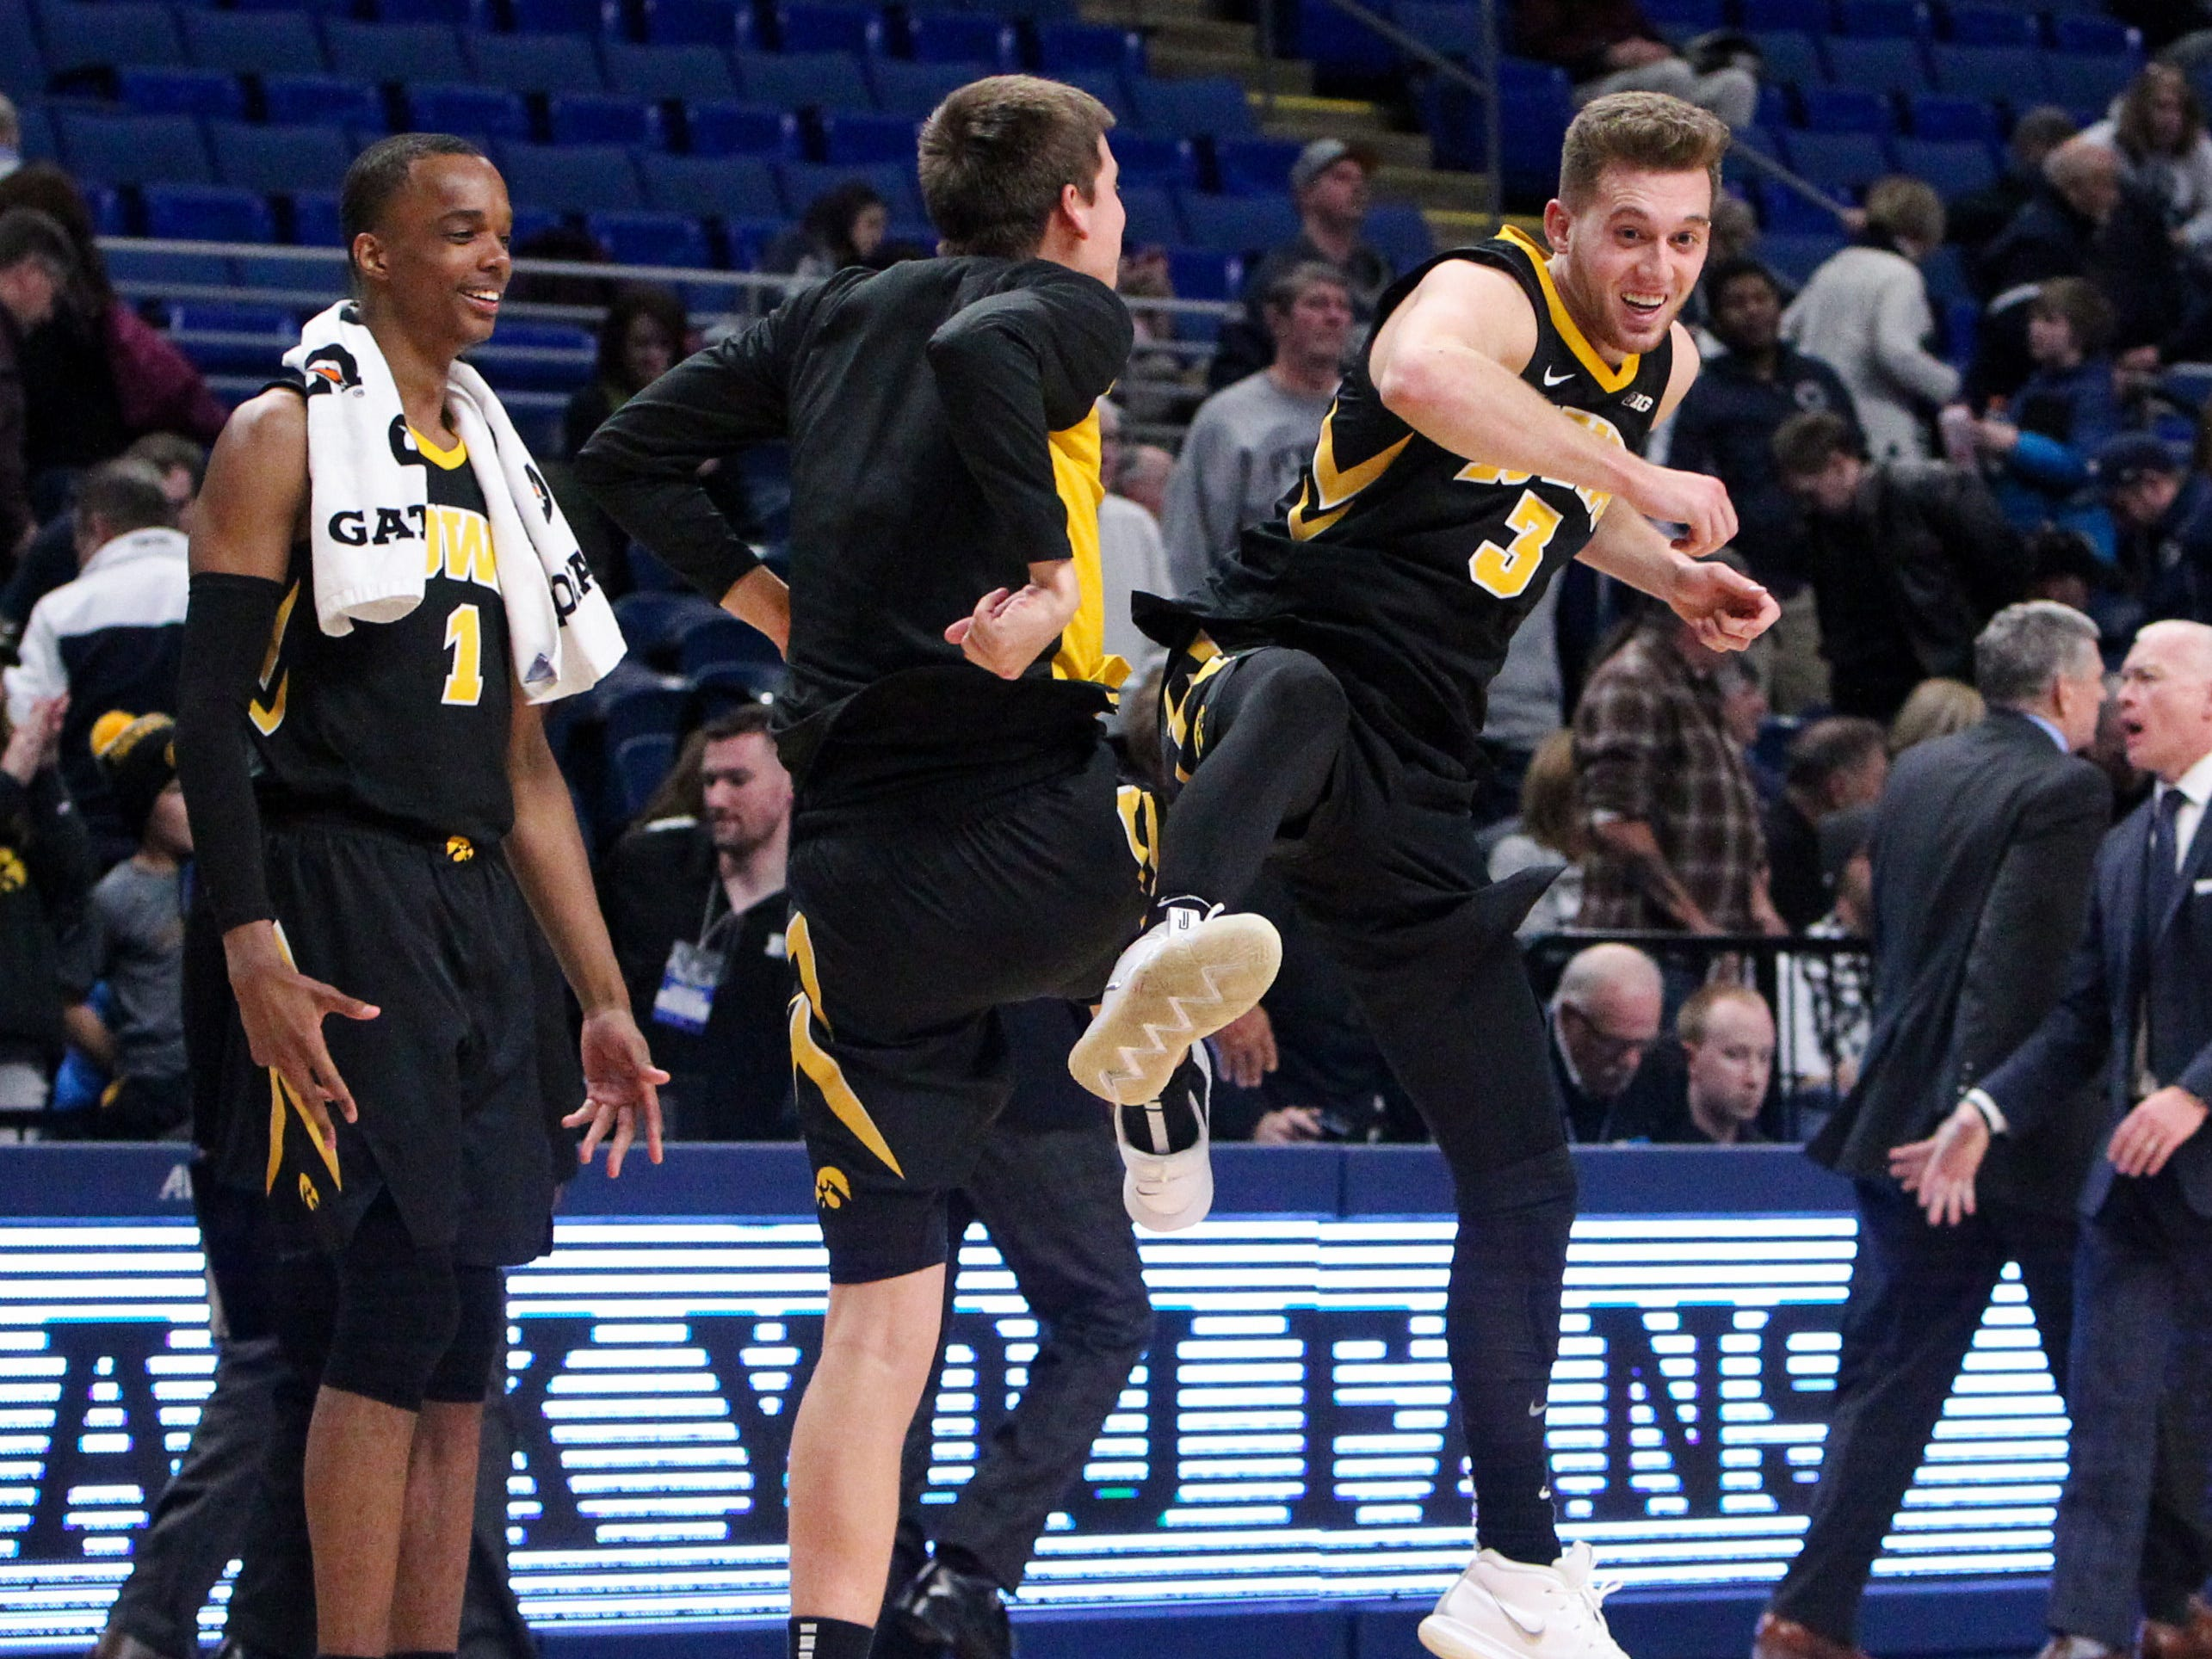 Leistikow: This Iowa basketball team finding toughness and joy it once lacked